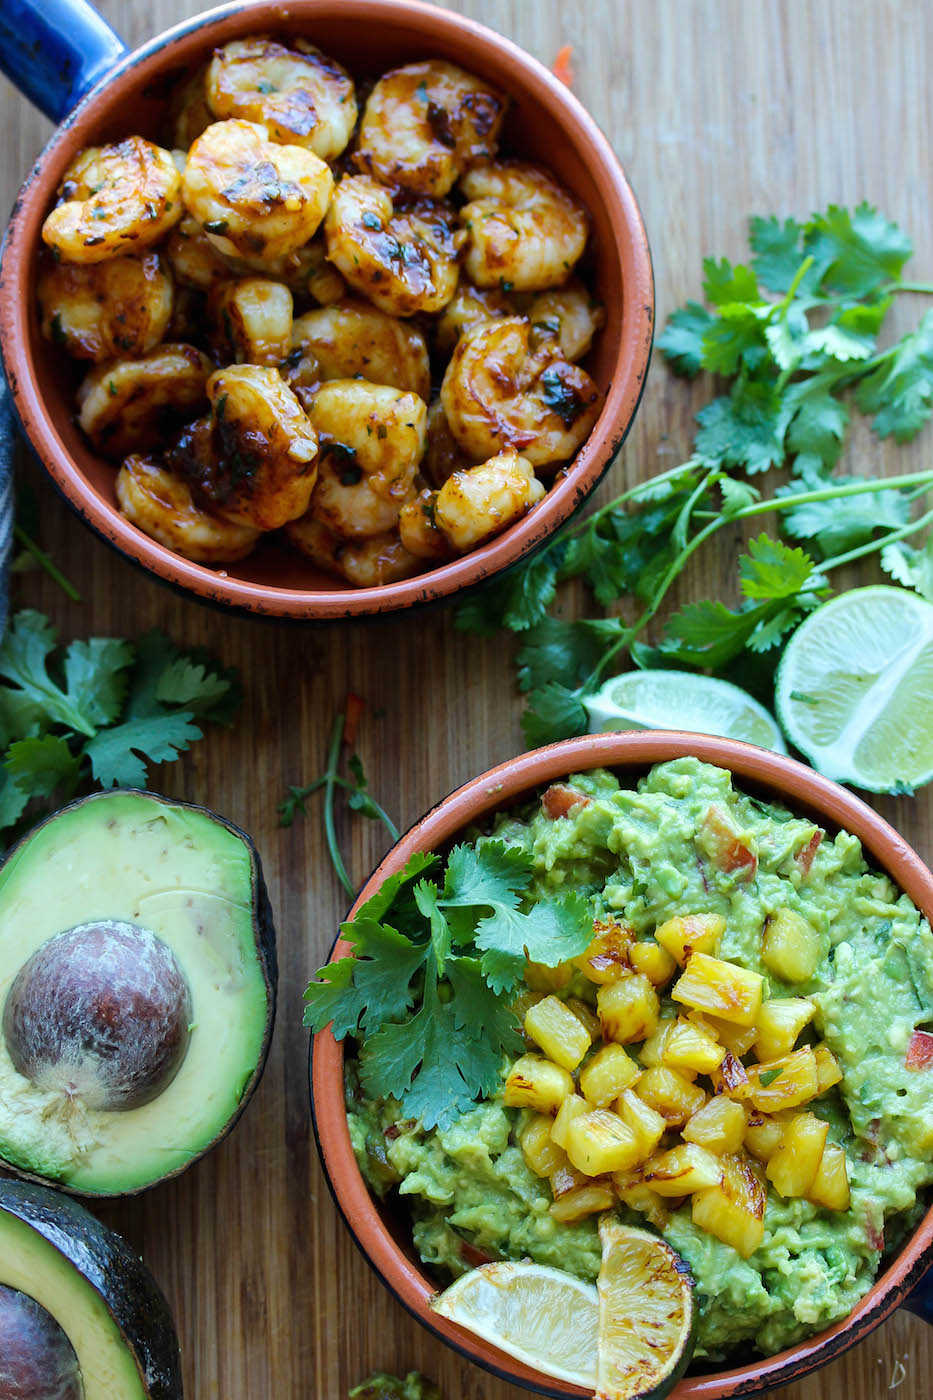 Chili-Lime Shrimp with Caramelized Pineapple Guacamole